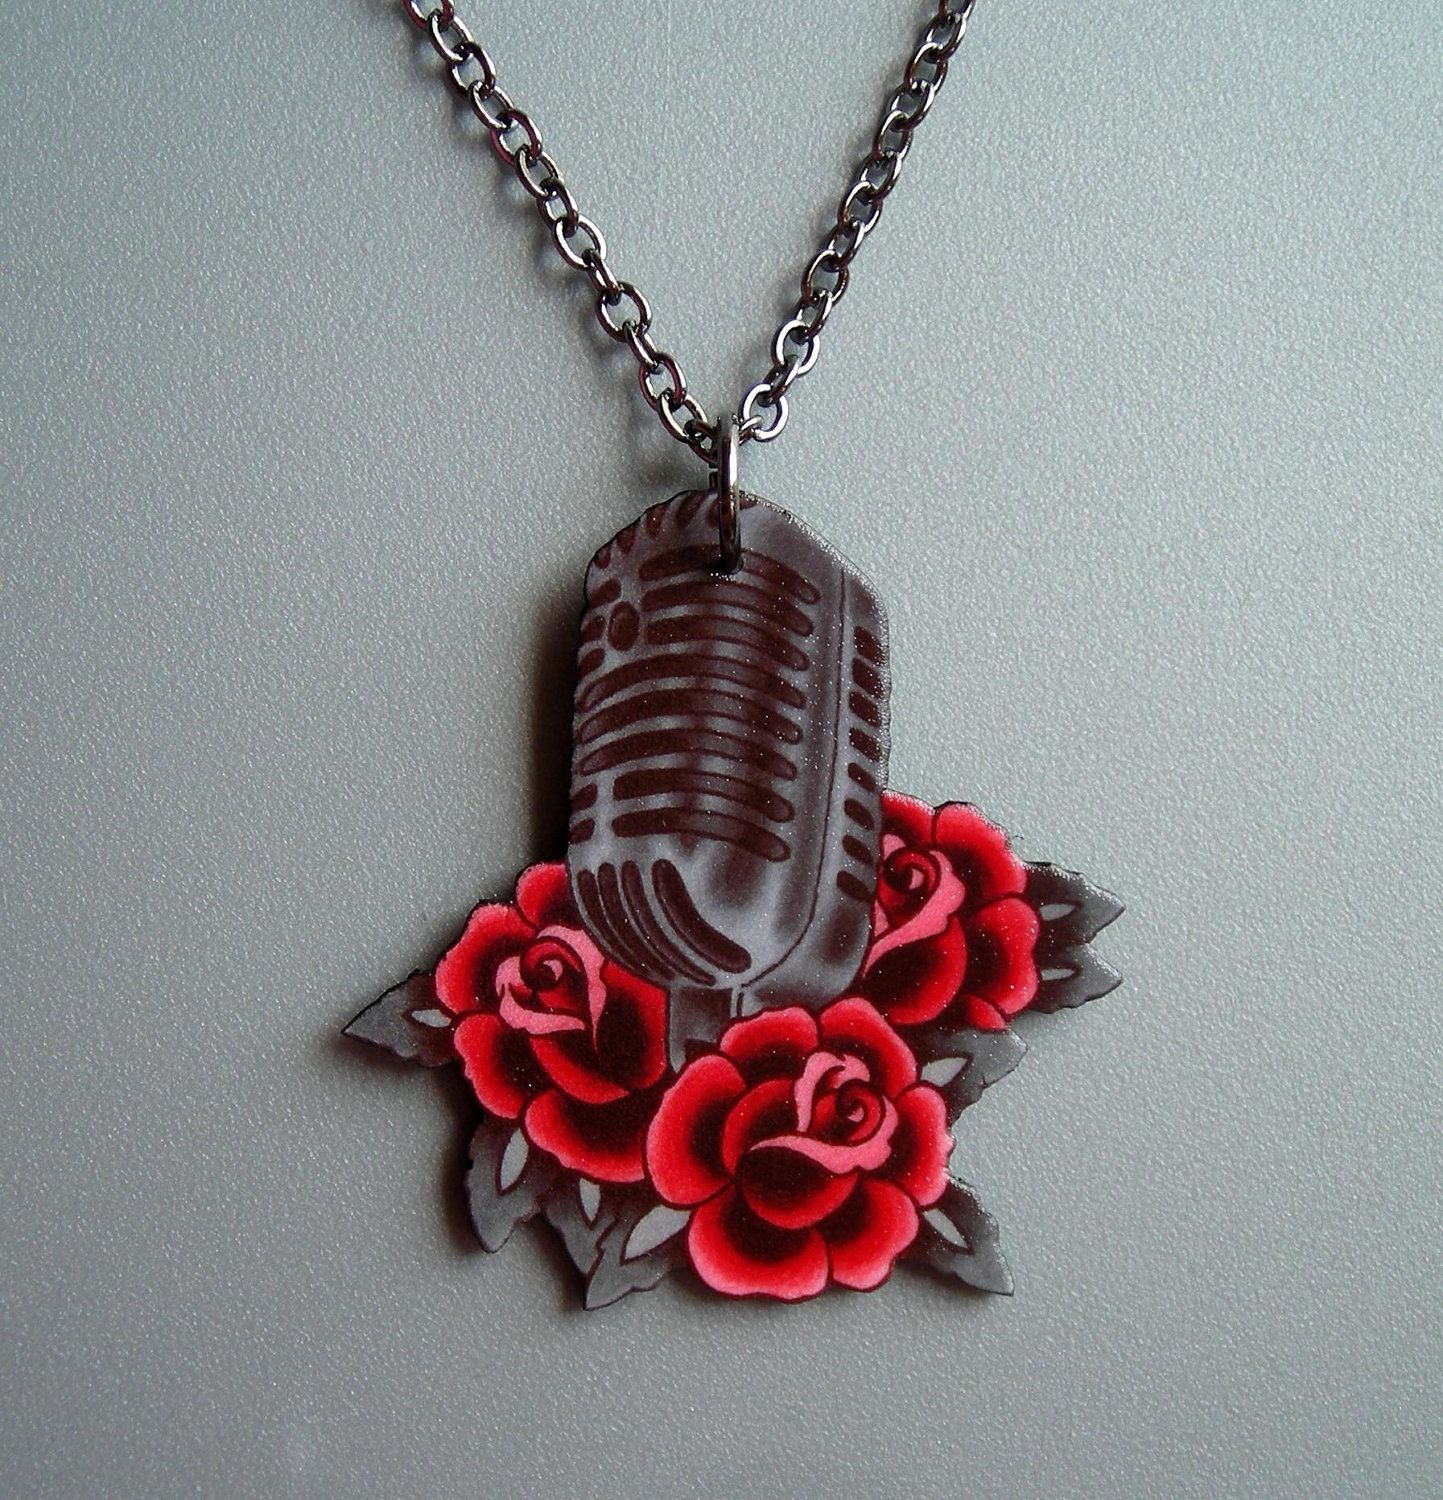 Vintage Microphone and Roses Necklace by theringleader on Etsy, $17.95